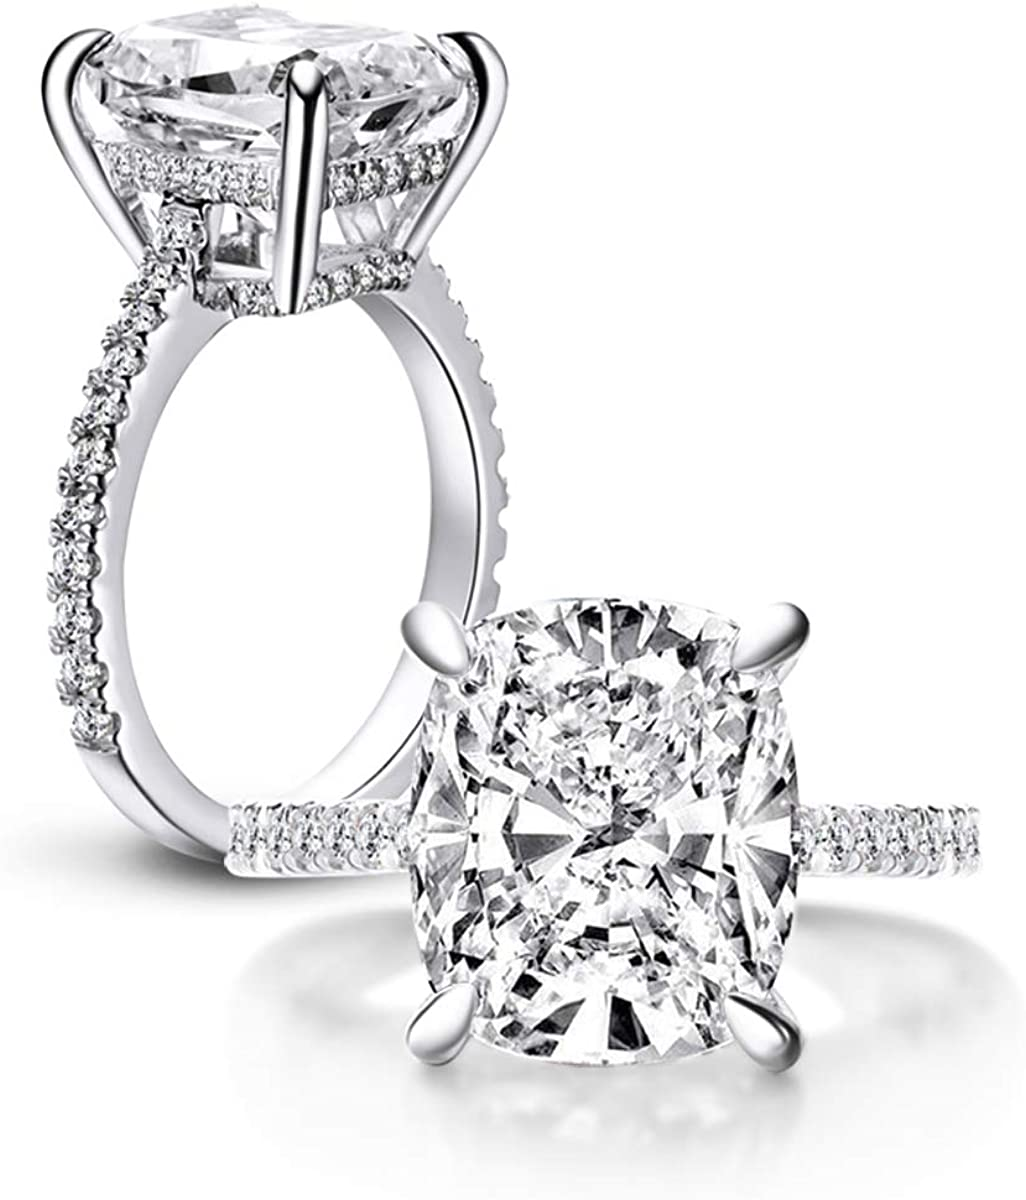 Online Jewelry 6.00 Ct Off White Cushion Cut Cubic Zirconia Diamond Three Stone Wedding Engagement Ring Size 7. 925 Sterling Silver